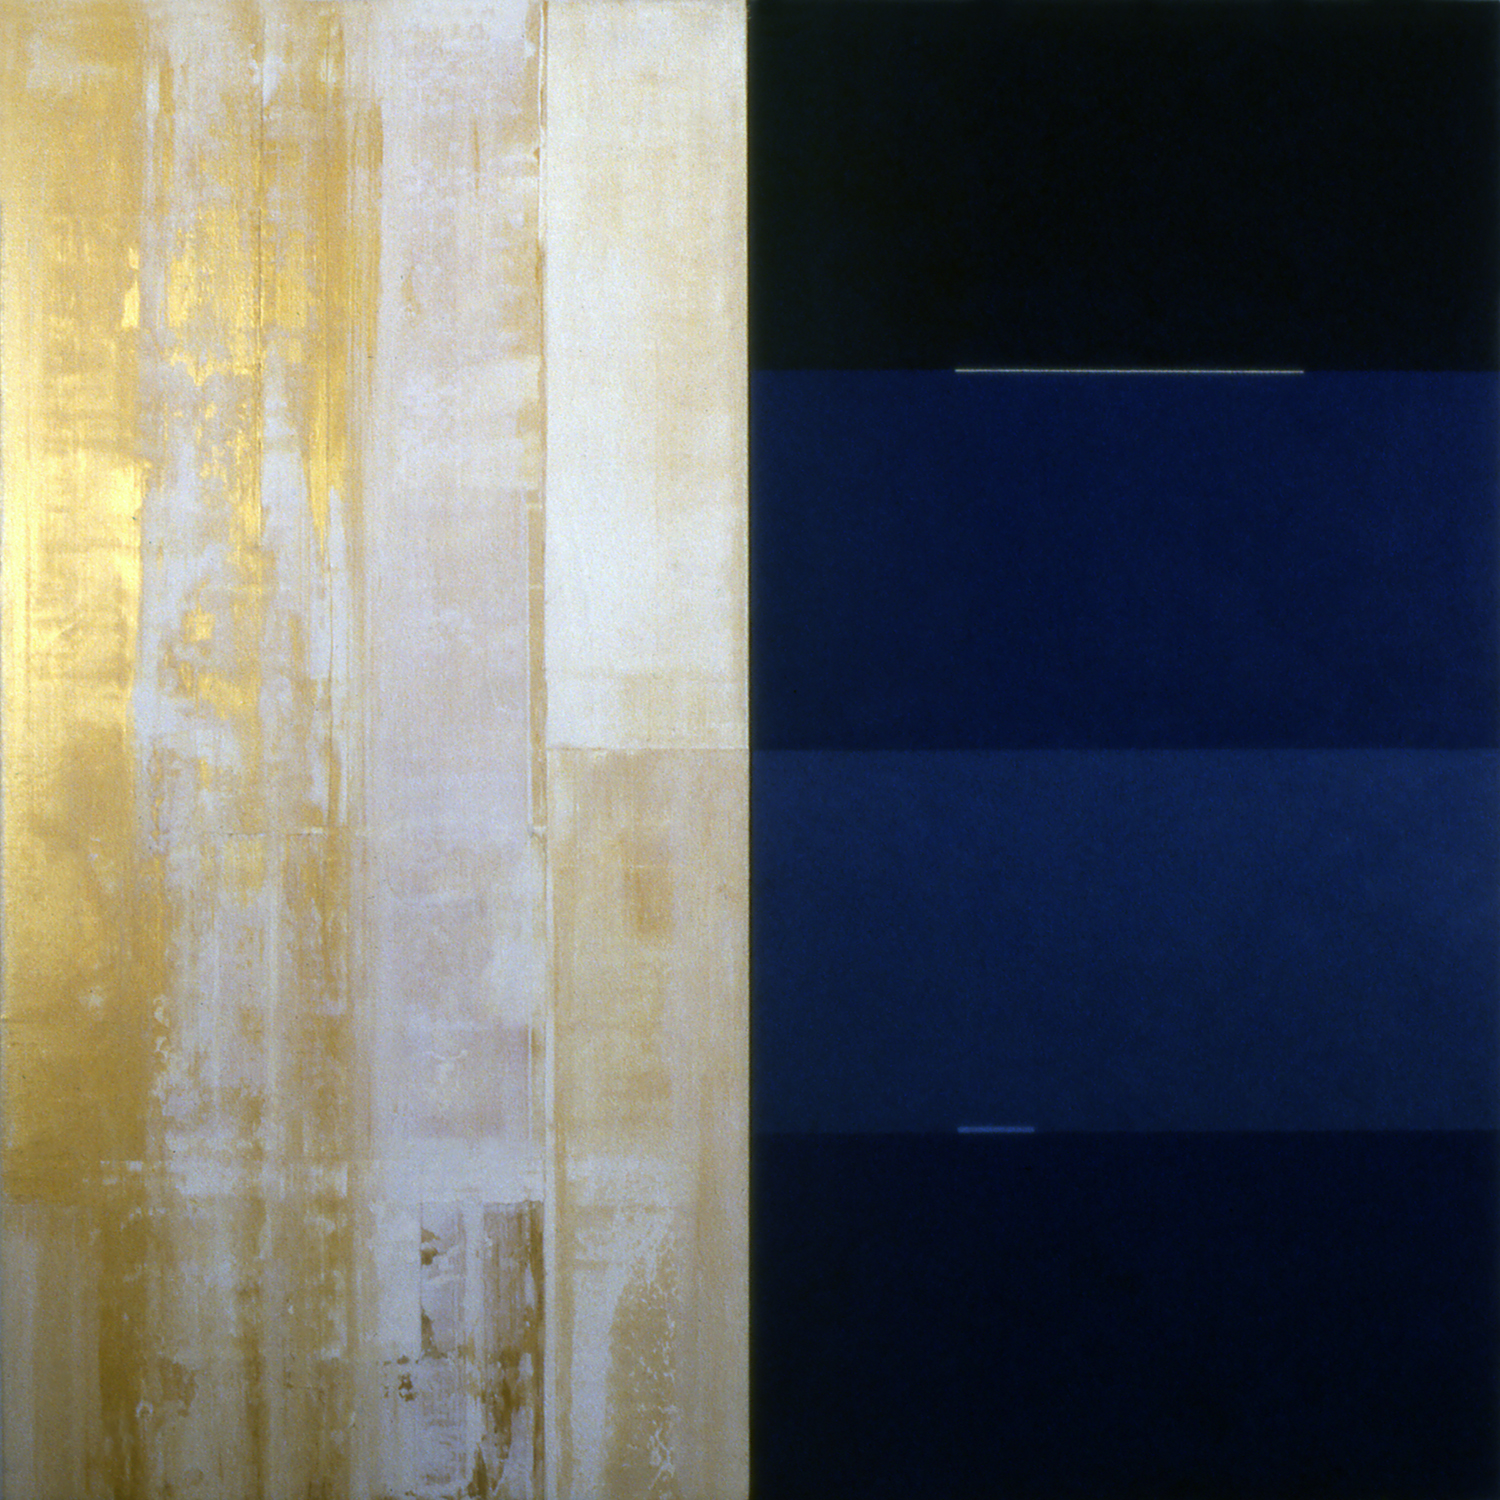 Janus XXXI, 1987, Acrylic on canvas over panels, 48 x 48 inches.